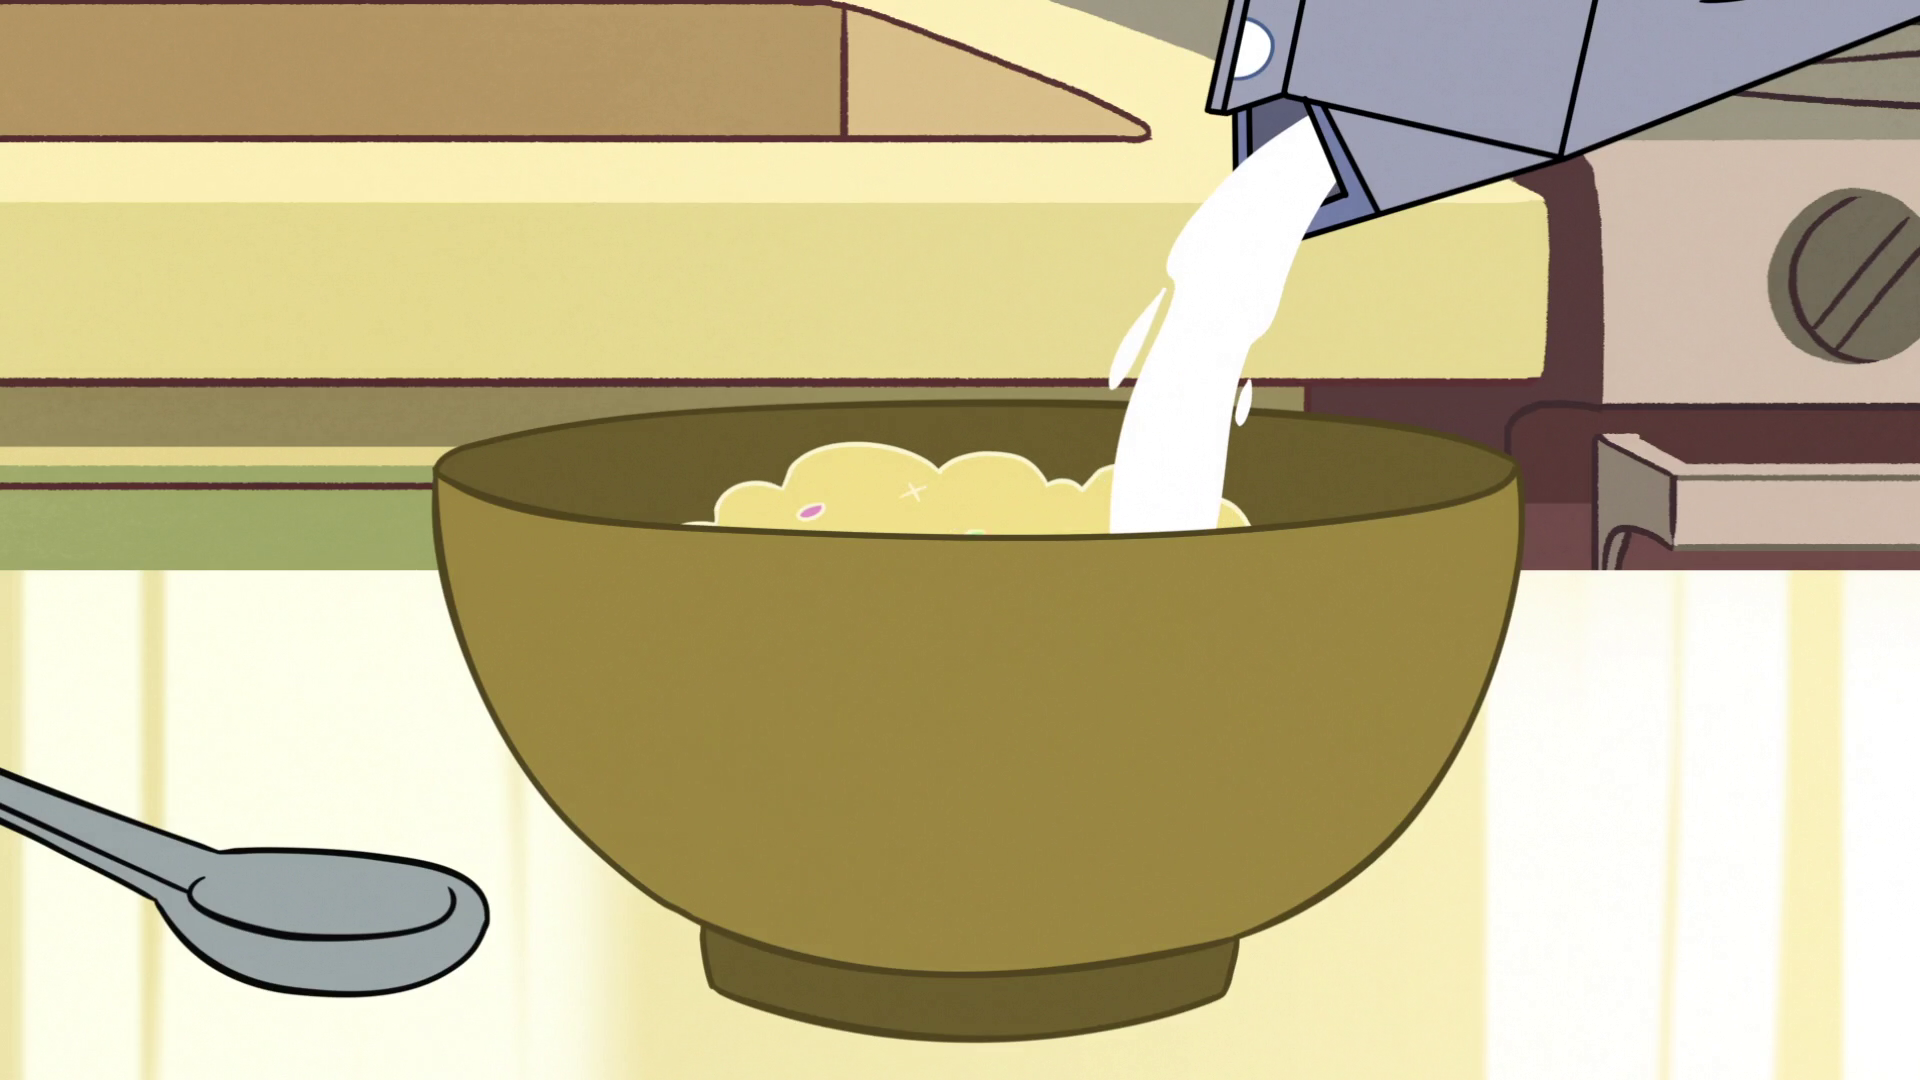 Image s e pouring. Cereal clipart cereal milk